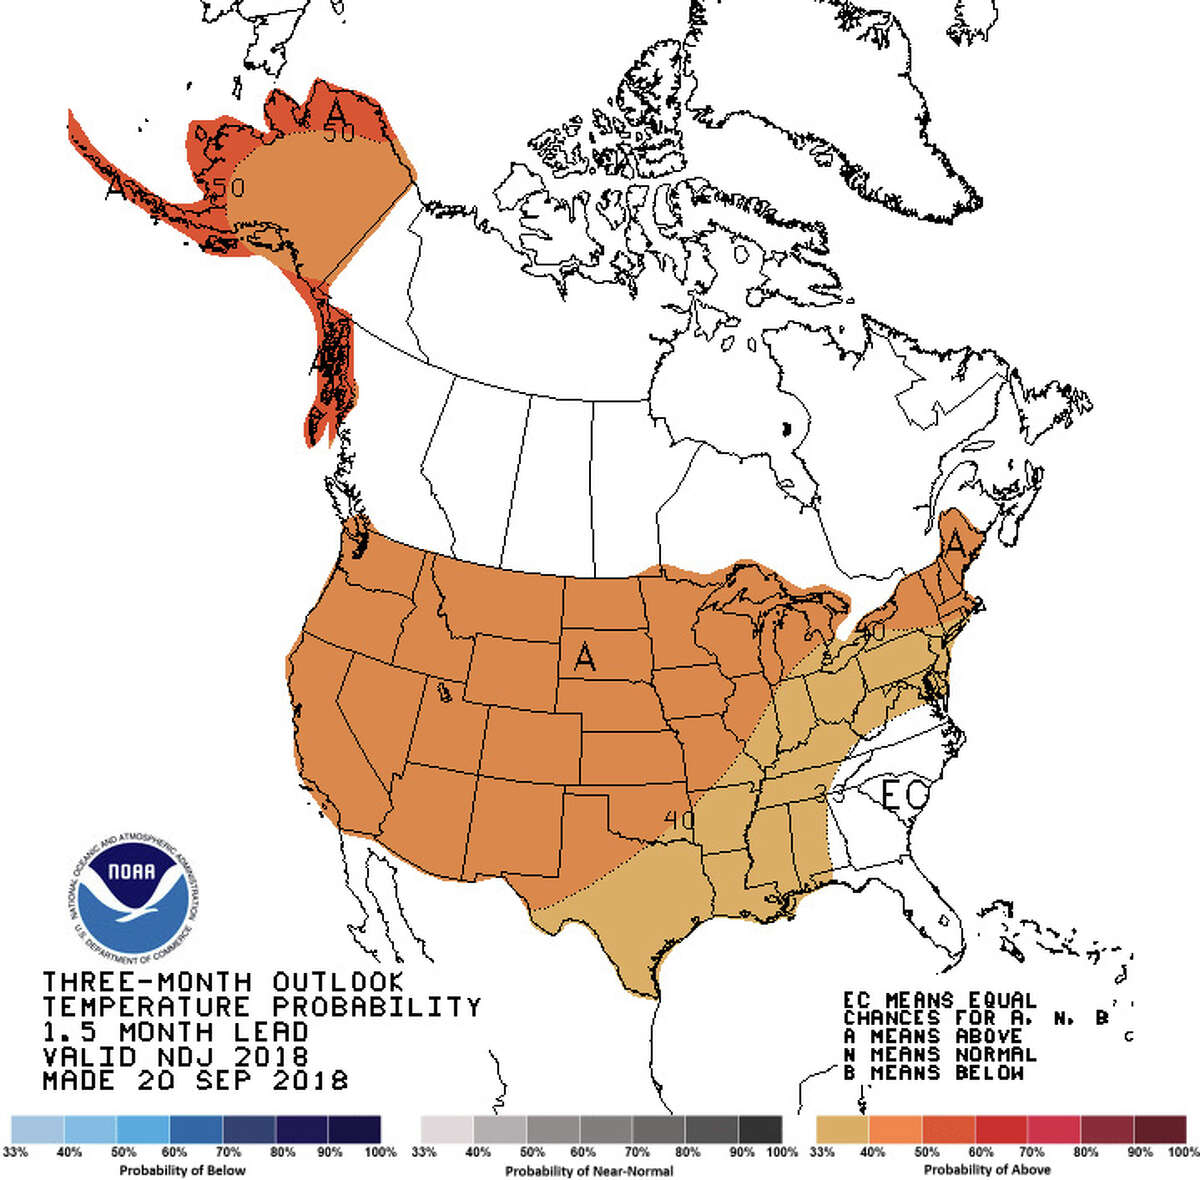 NOAA's three-month outlook has most of the U.S. at 30 percent or better chance of warmer-than-normal temperatures from November through January.